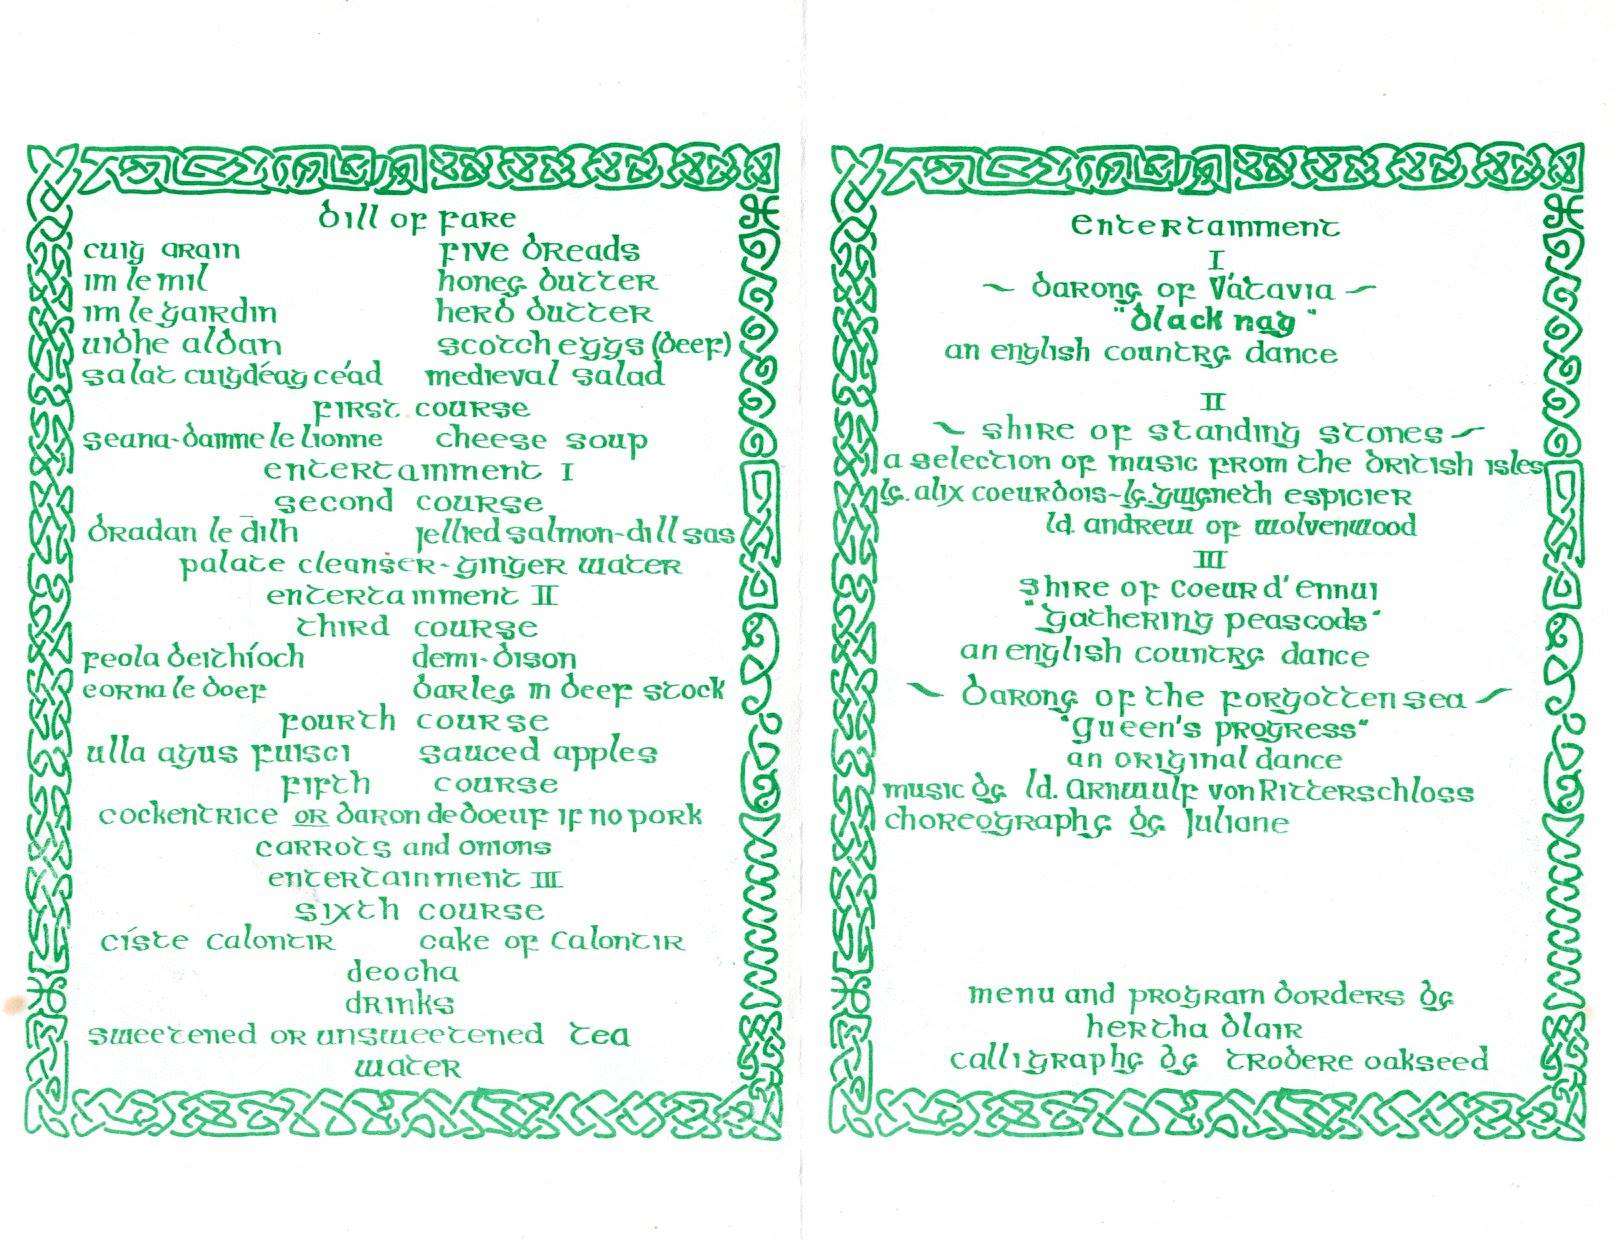 Inside of Flyer for the last feast of the Region of Calontir / first feast of the Principality of Calontir held on 26 September AS XVI (1981).